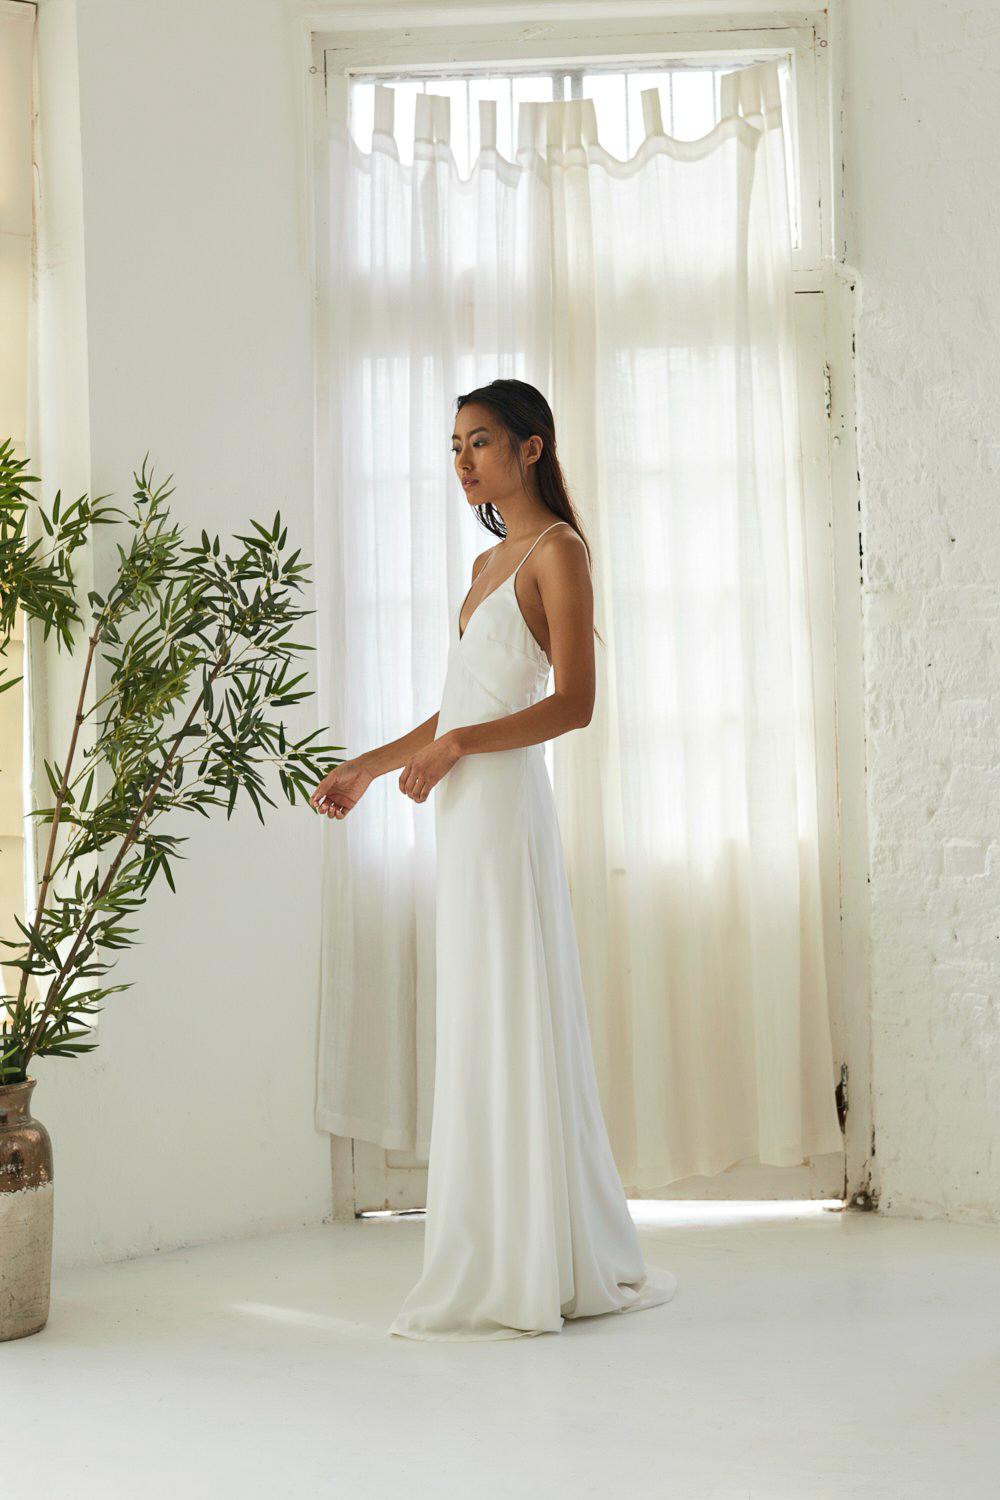 ANAIS GOWN – The ANAIS wedding dress epitomizes effortless elegance. This slip style wedding gown features under bust seam detailing and thin bias straps that cross over the low back. The subtle V-front bodice is semi fitted around the bust and falls softly down to a loosely skimming liquid silk skirt.